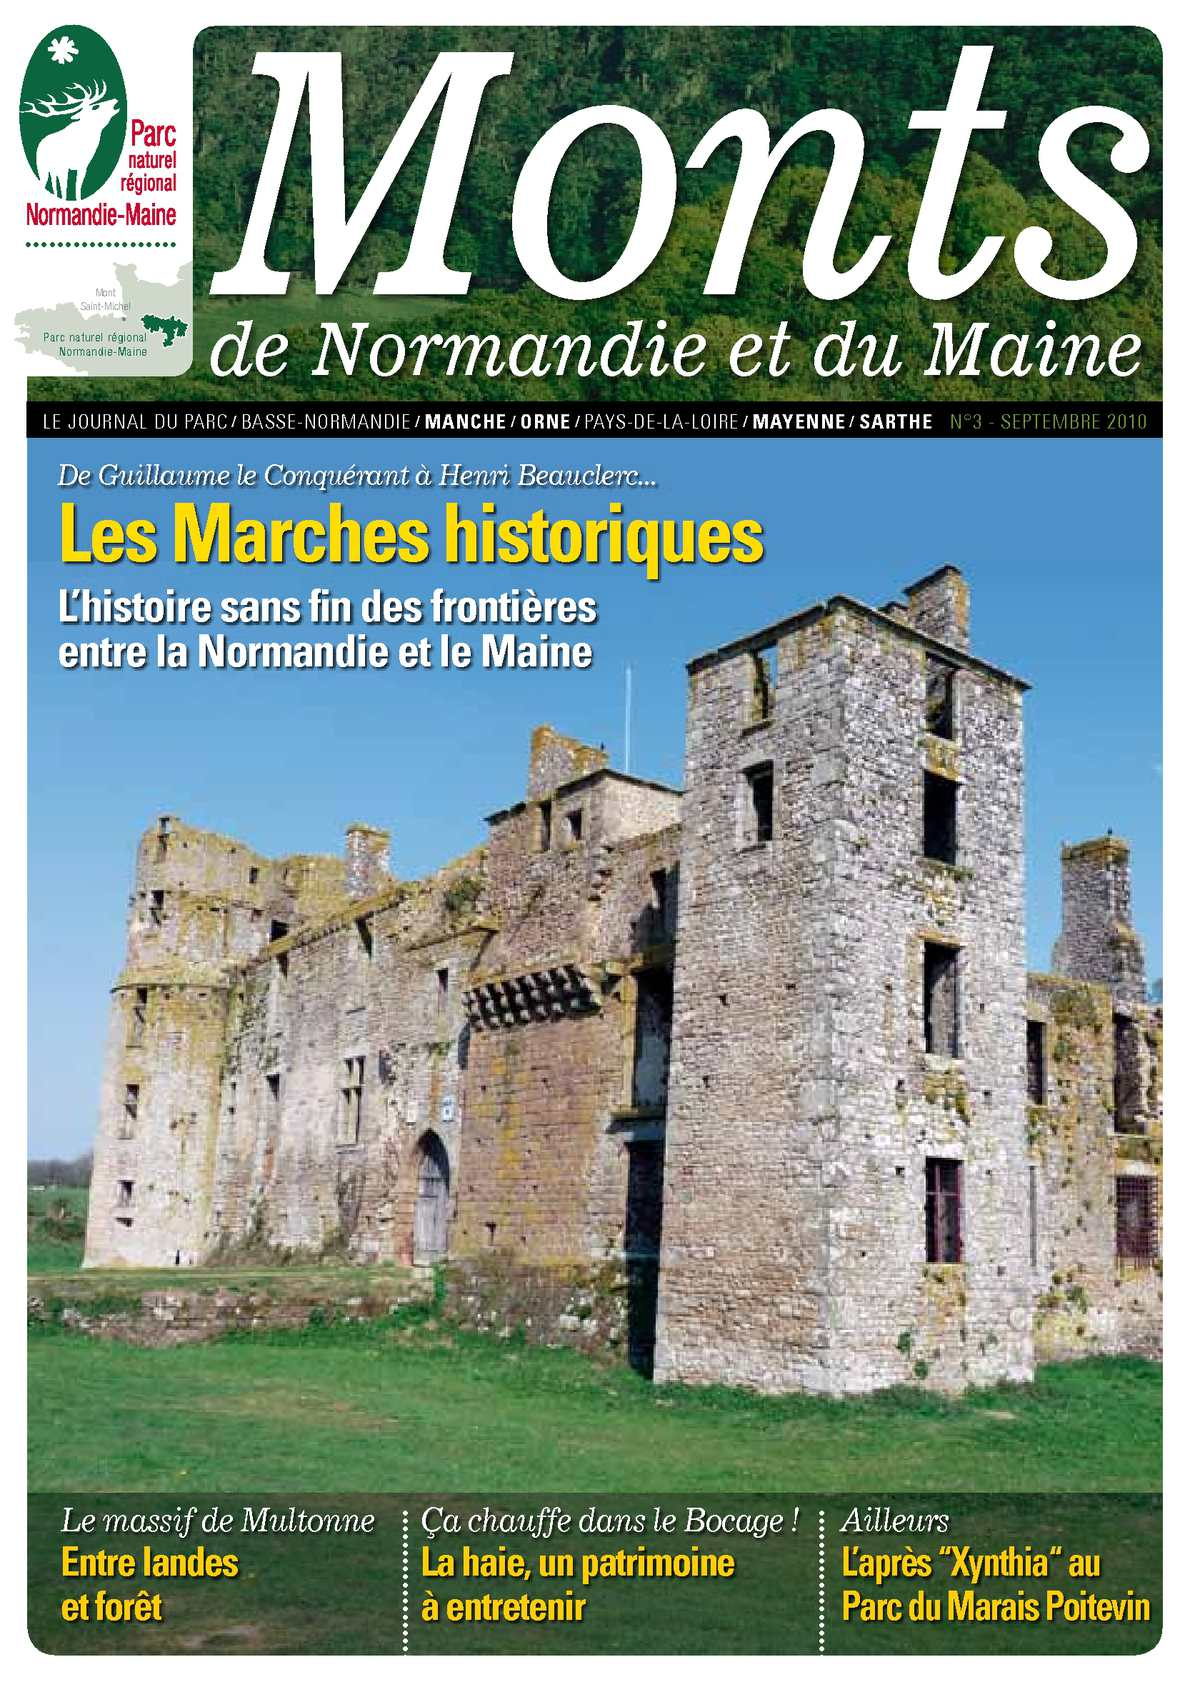 Calam o monts de normandie et du maine journal du parc n 3 septembre 2010 - Journal basse normandie ...